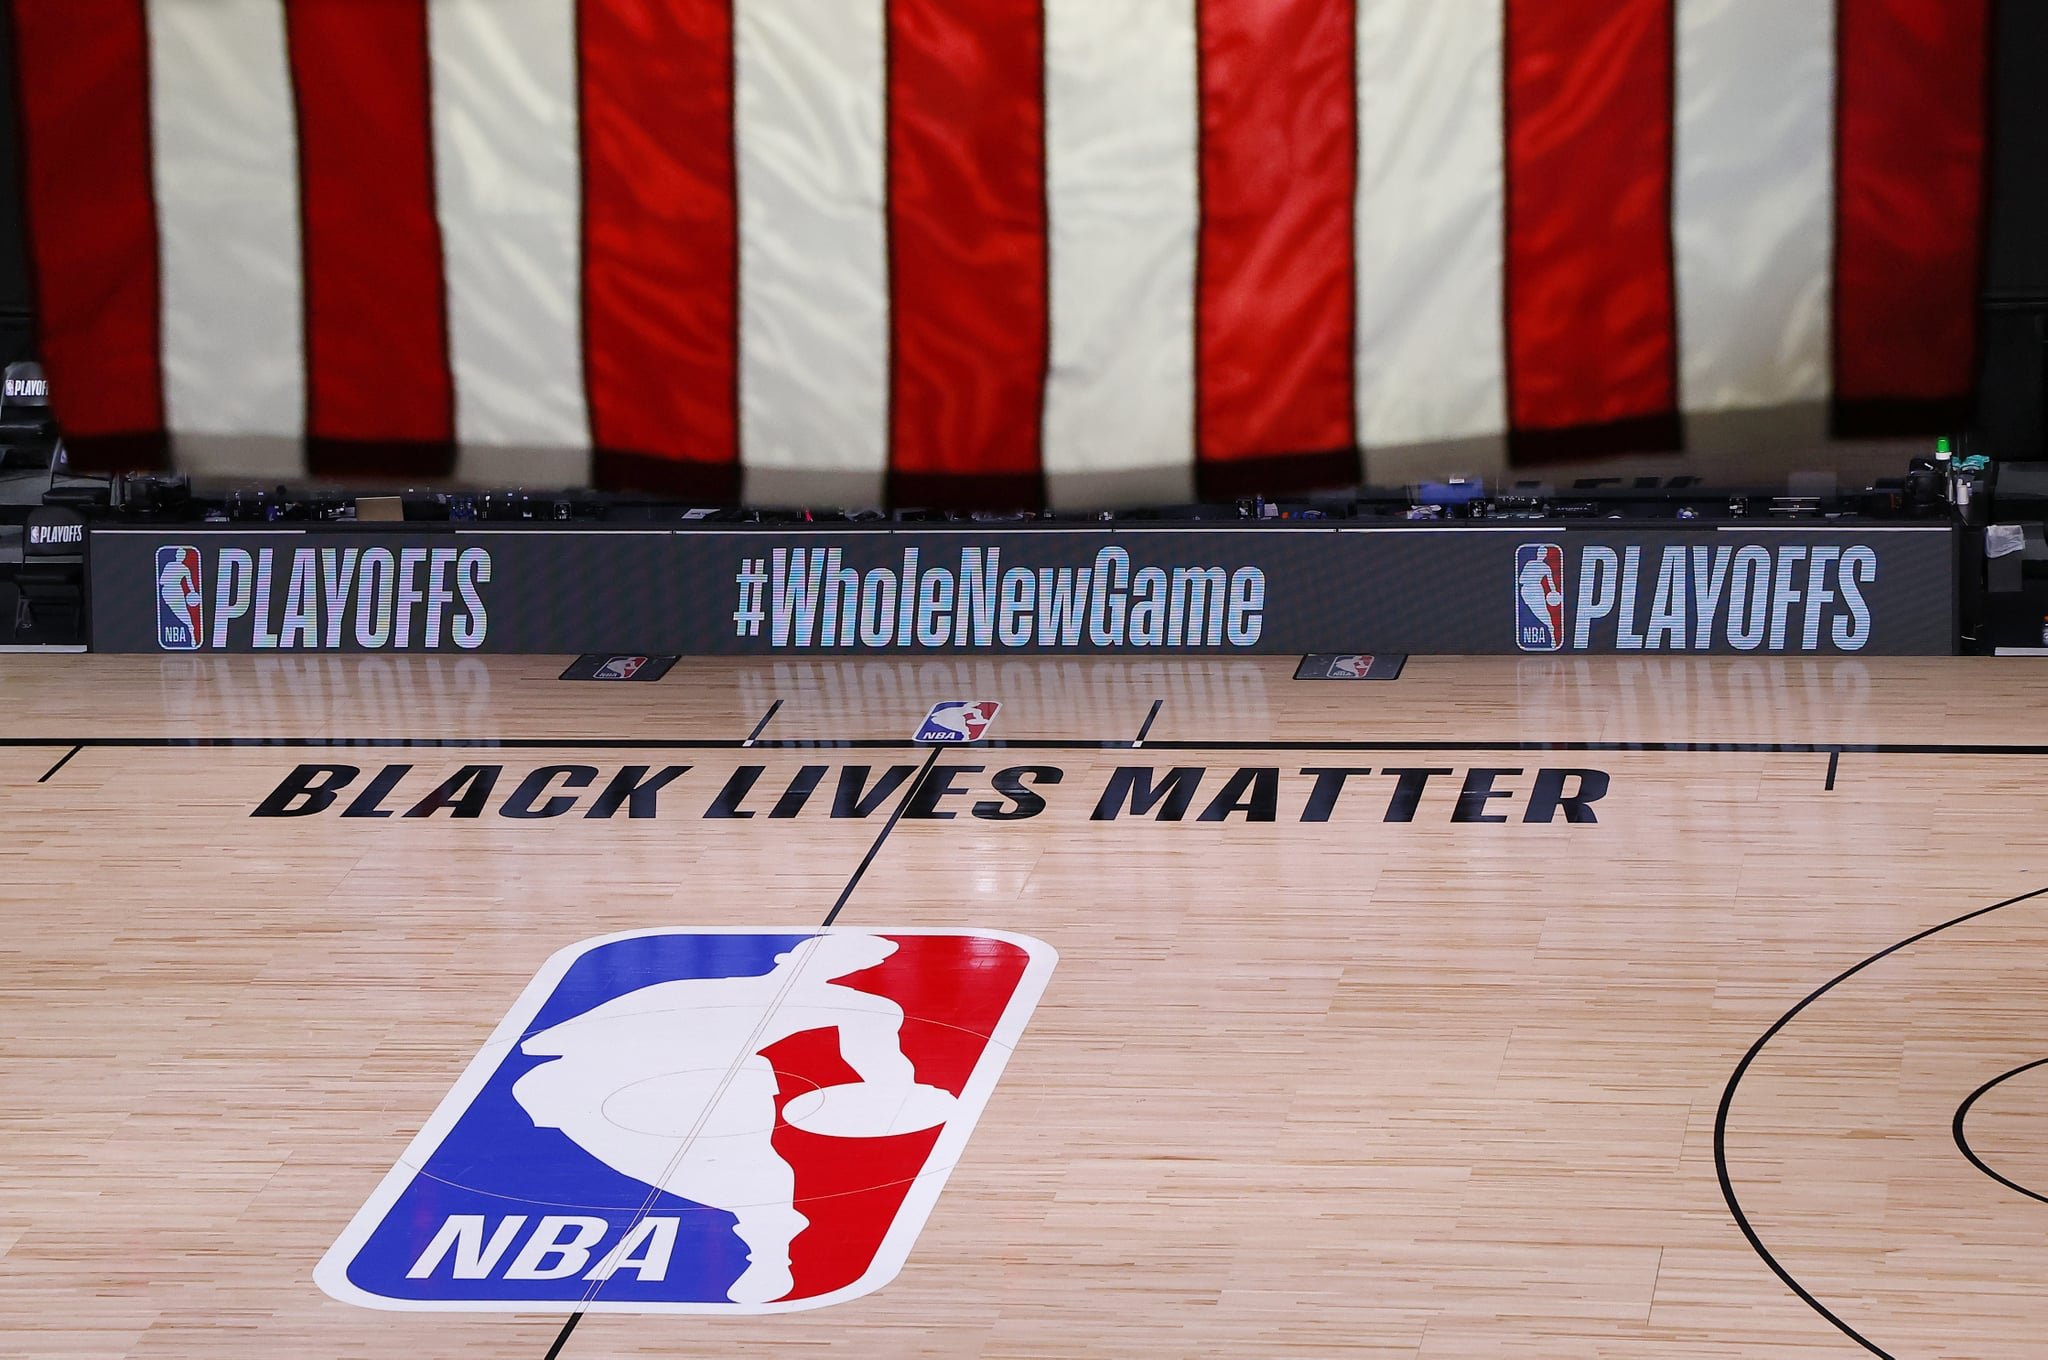 LAKE BUENA VISTA, FLORIDA - AUGUST 26: An empty court and bench is shown following the scheduled start time in Game Five of the Eastern Conference First Round between the Milwaukee Bucks and the Orlando Magic during the 2020 NBA Playoffs at AdventHealth Arena at ESPN Wide World Of Sports Complex on August 26, 2020 in Lake Buena Vista, Florida. The Milwaukee Buck have boycotted game 5 reportedly to protest the shooting of Jacob Blake in Kenosha, Wisconsin. NOTE TO USER: User expressly acknowledges and agrees that, by downloading and or using this photograph, User is consenting to the terms and conditions of the Getty Images Licence Agreement. (Photo by Kevin C. Cox/Getty Images)